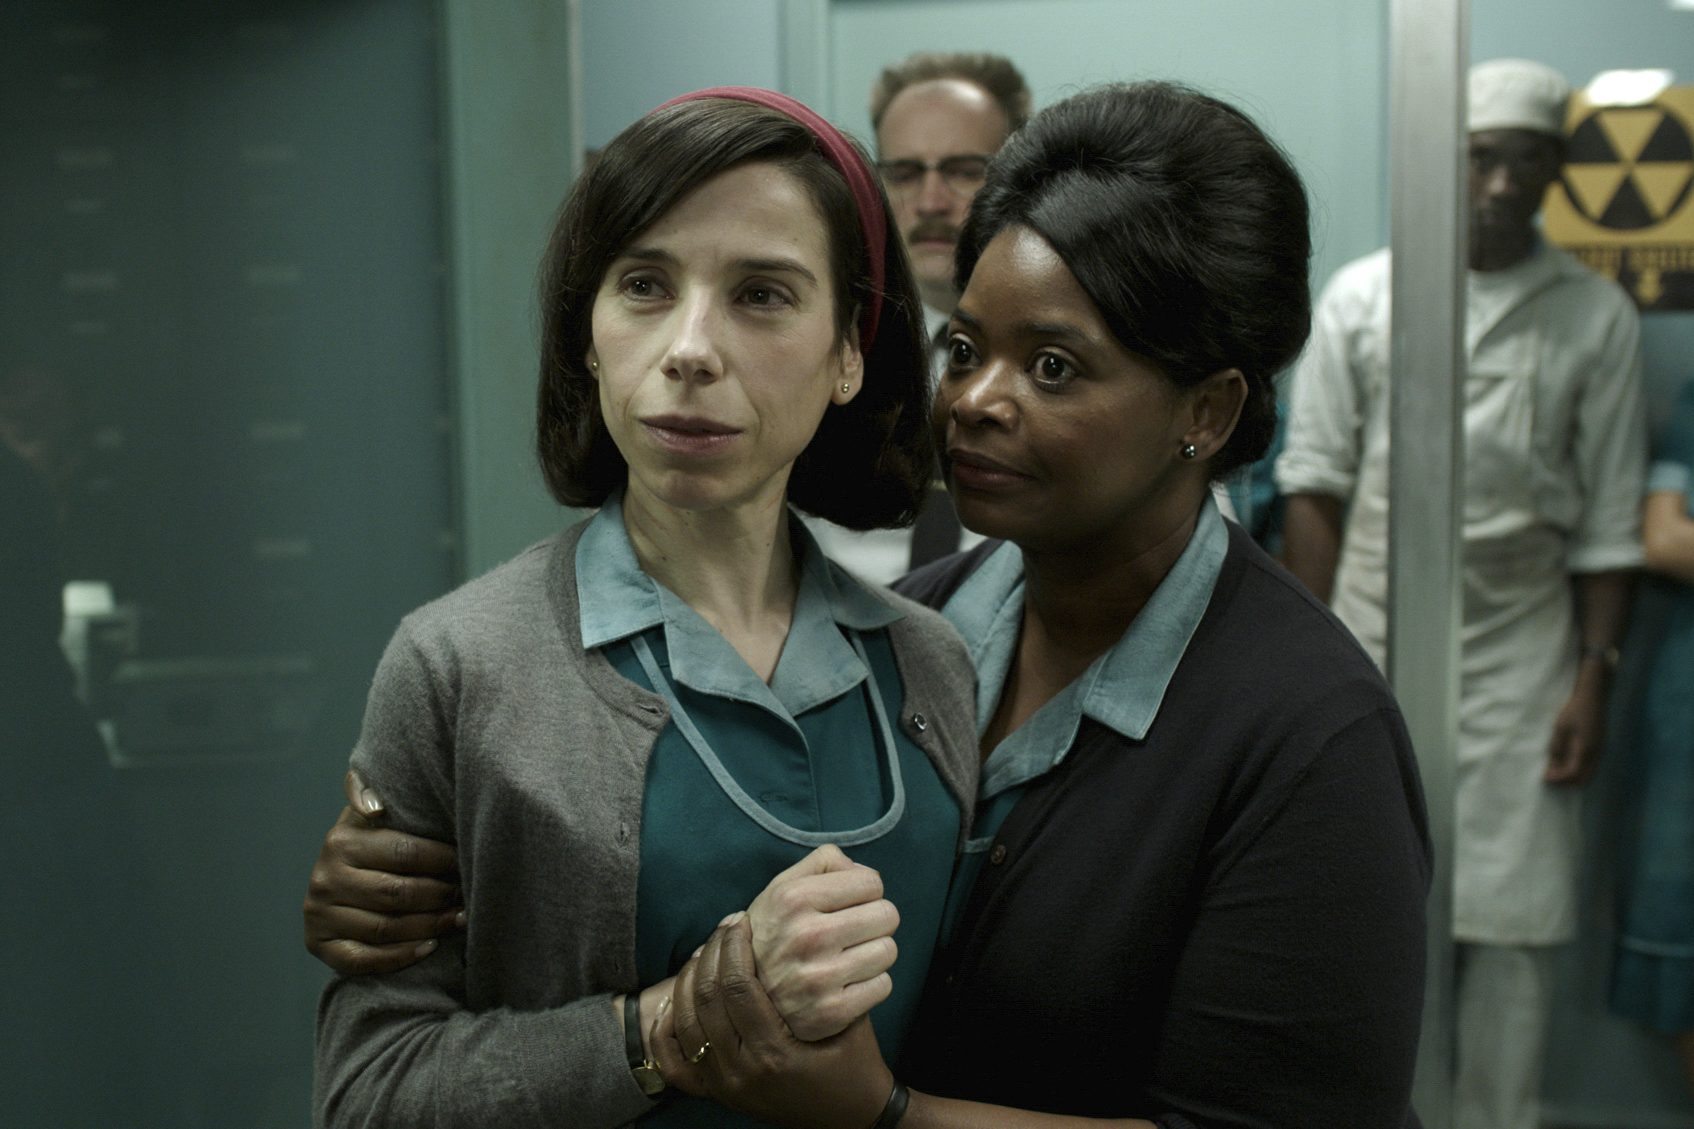 Sally Hawkins (left) and Octavia Spencer in a scene from Guillermo del Toro's